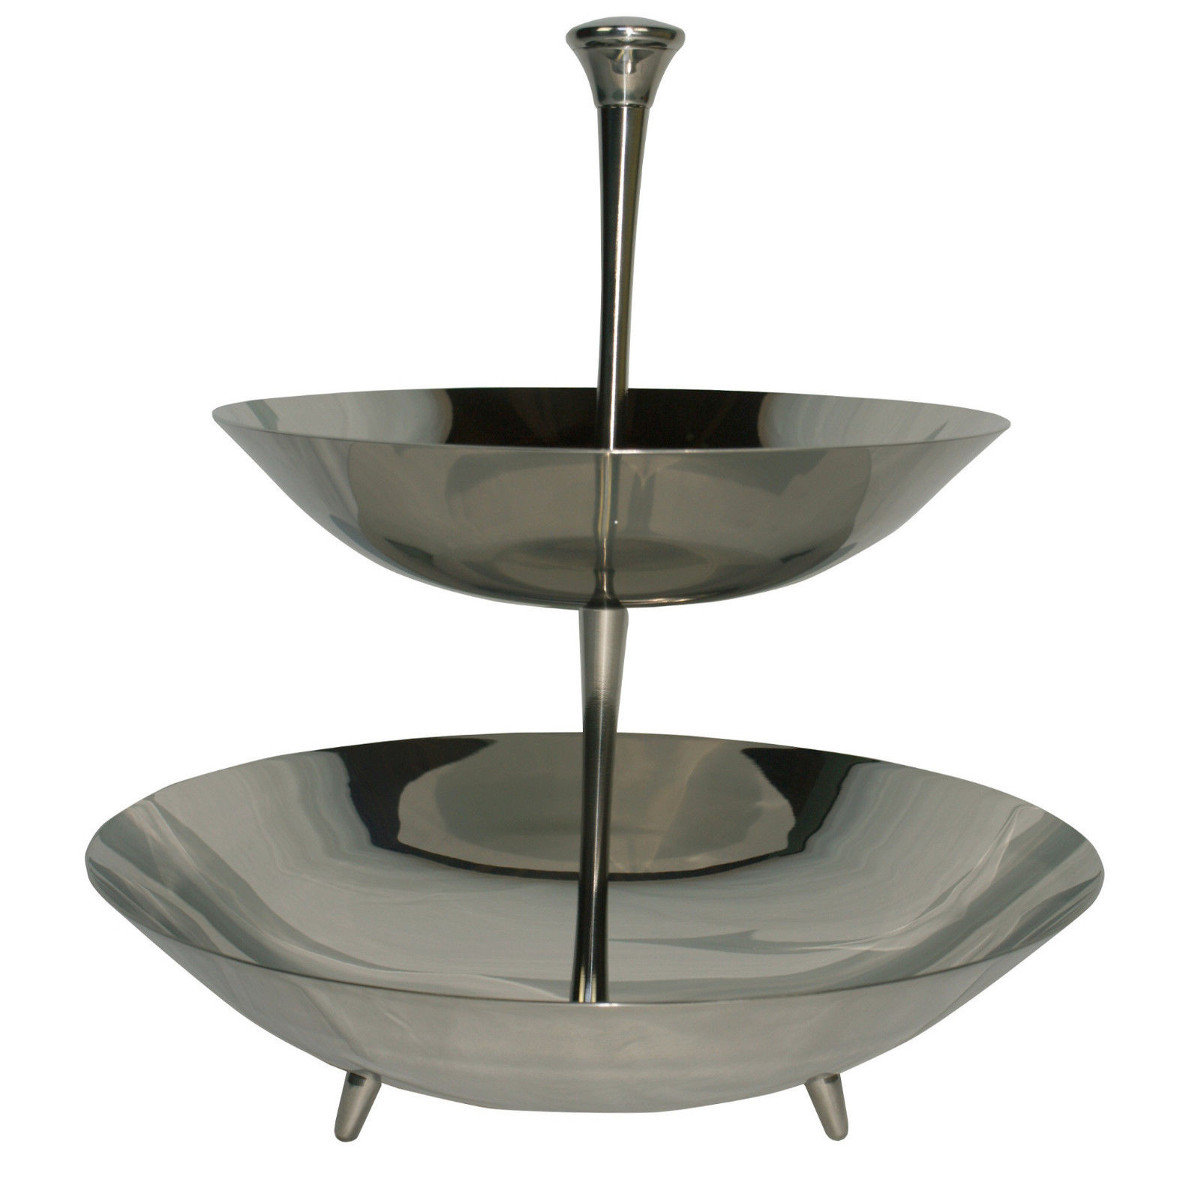 Piazza Cake Stand Stainless Steel Italian Cooking Store